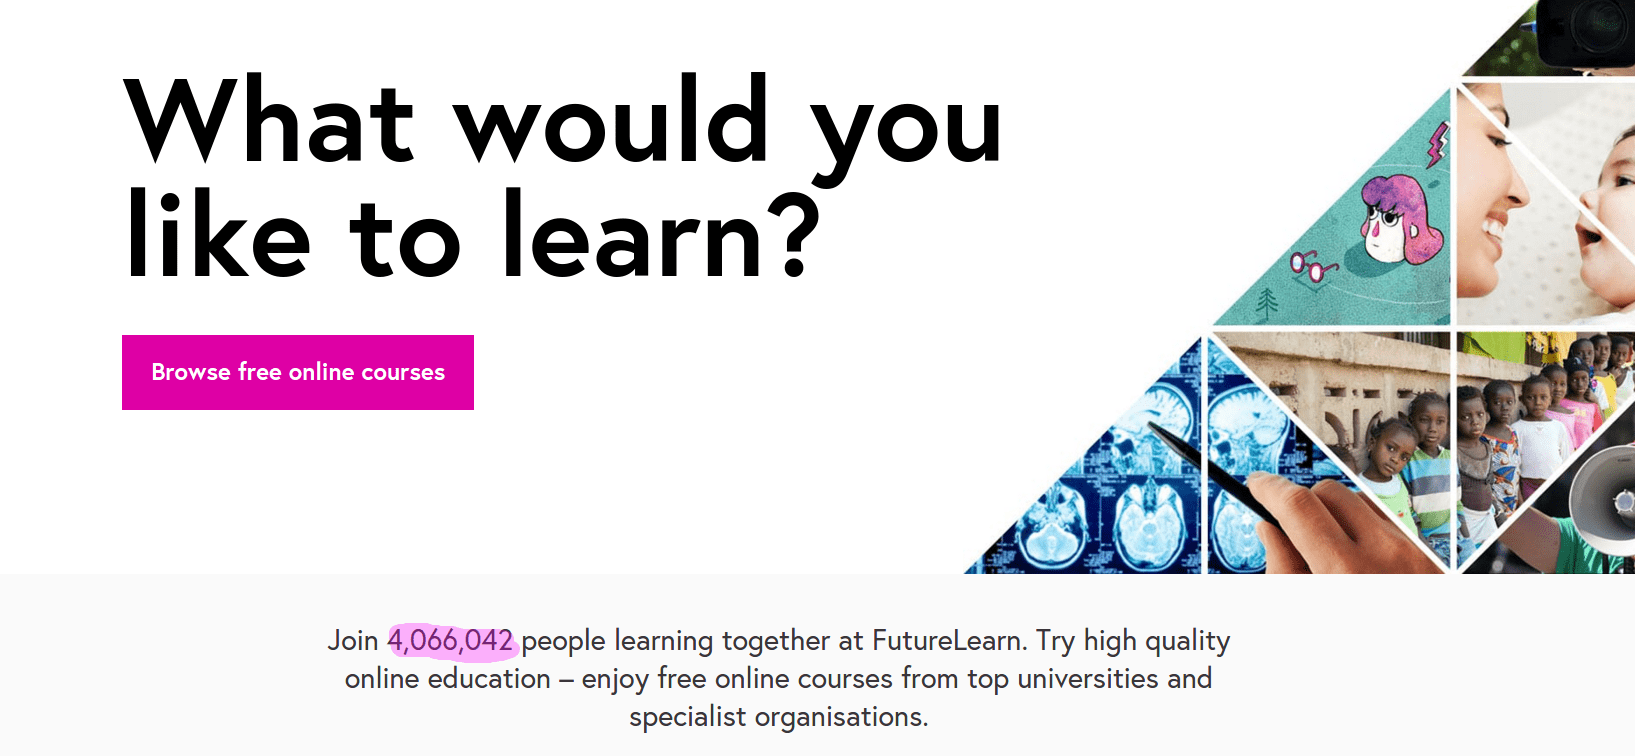 Futurelearn Homepage - 4 Million